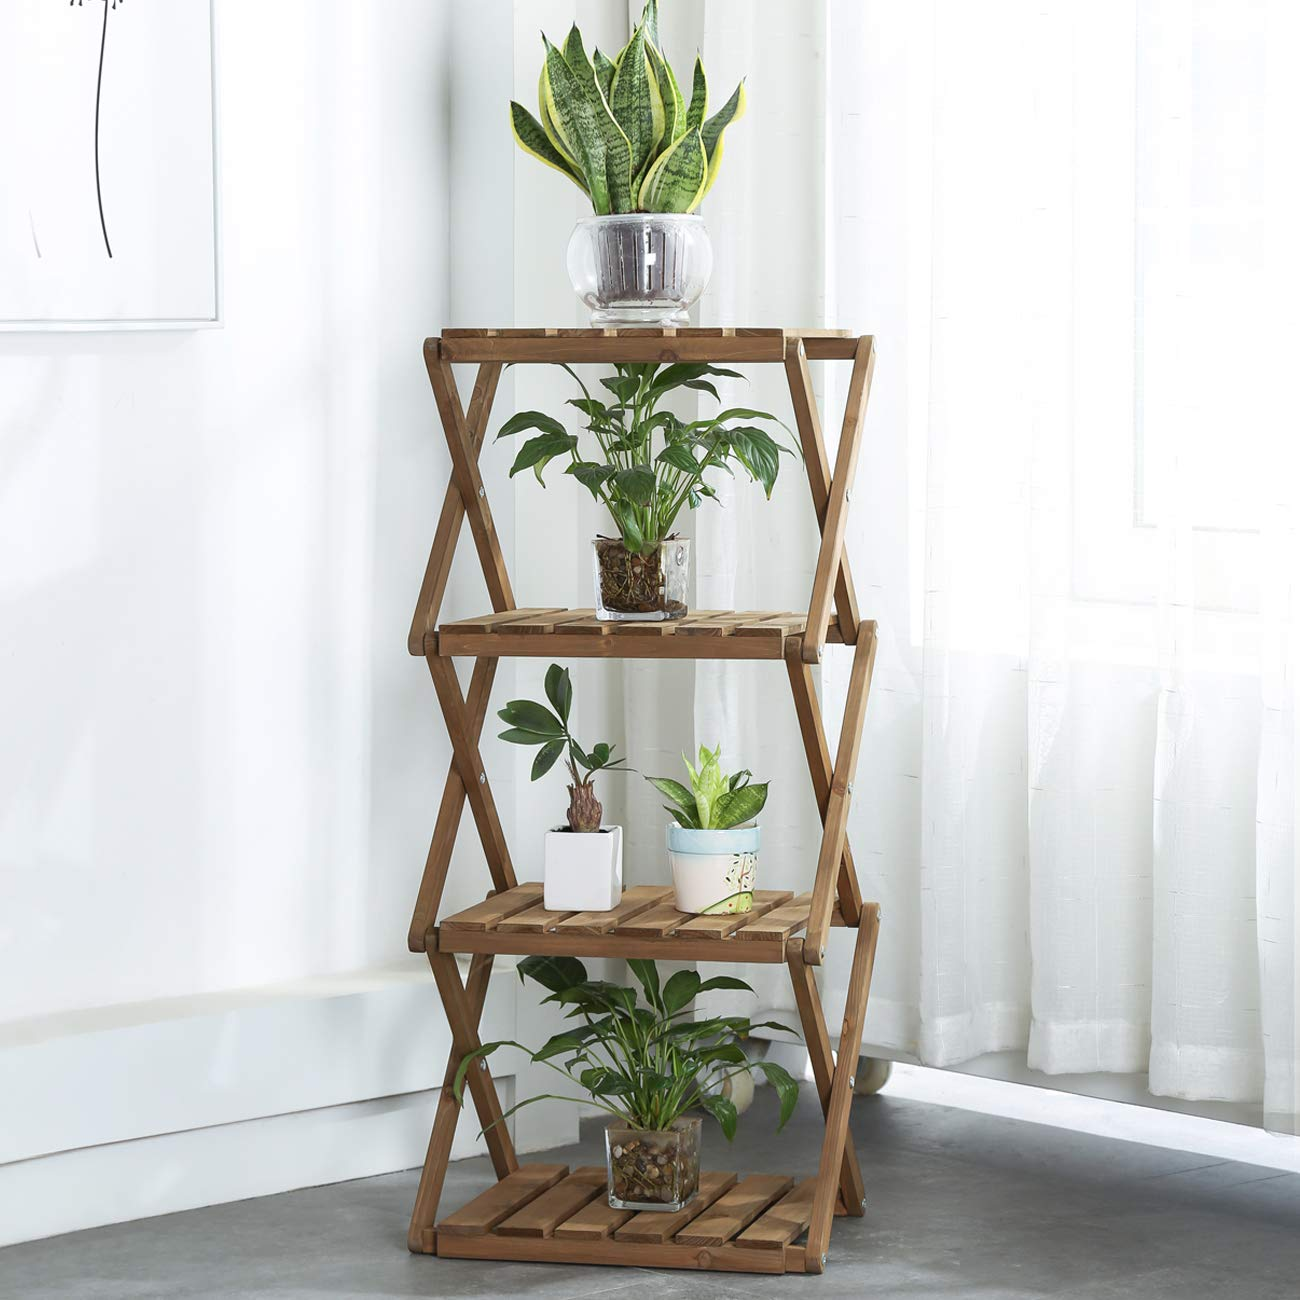 Sunnyglade 4-Tier Foldable Flower Rack Plant Stand Wood Shelf Multipurpose Utility Storage Rack Books Picture Frames Shelves for Yard Garden Patio Balcony Bedroom by Sunnyglade